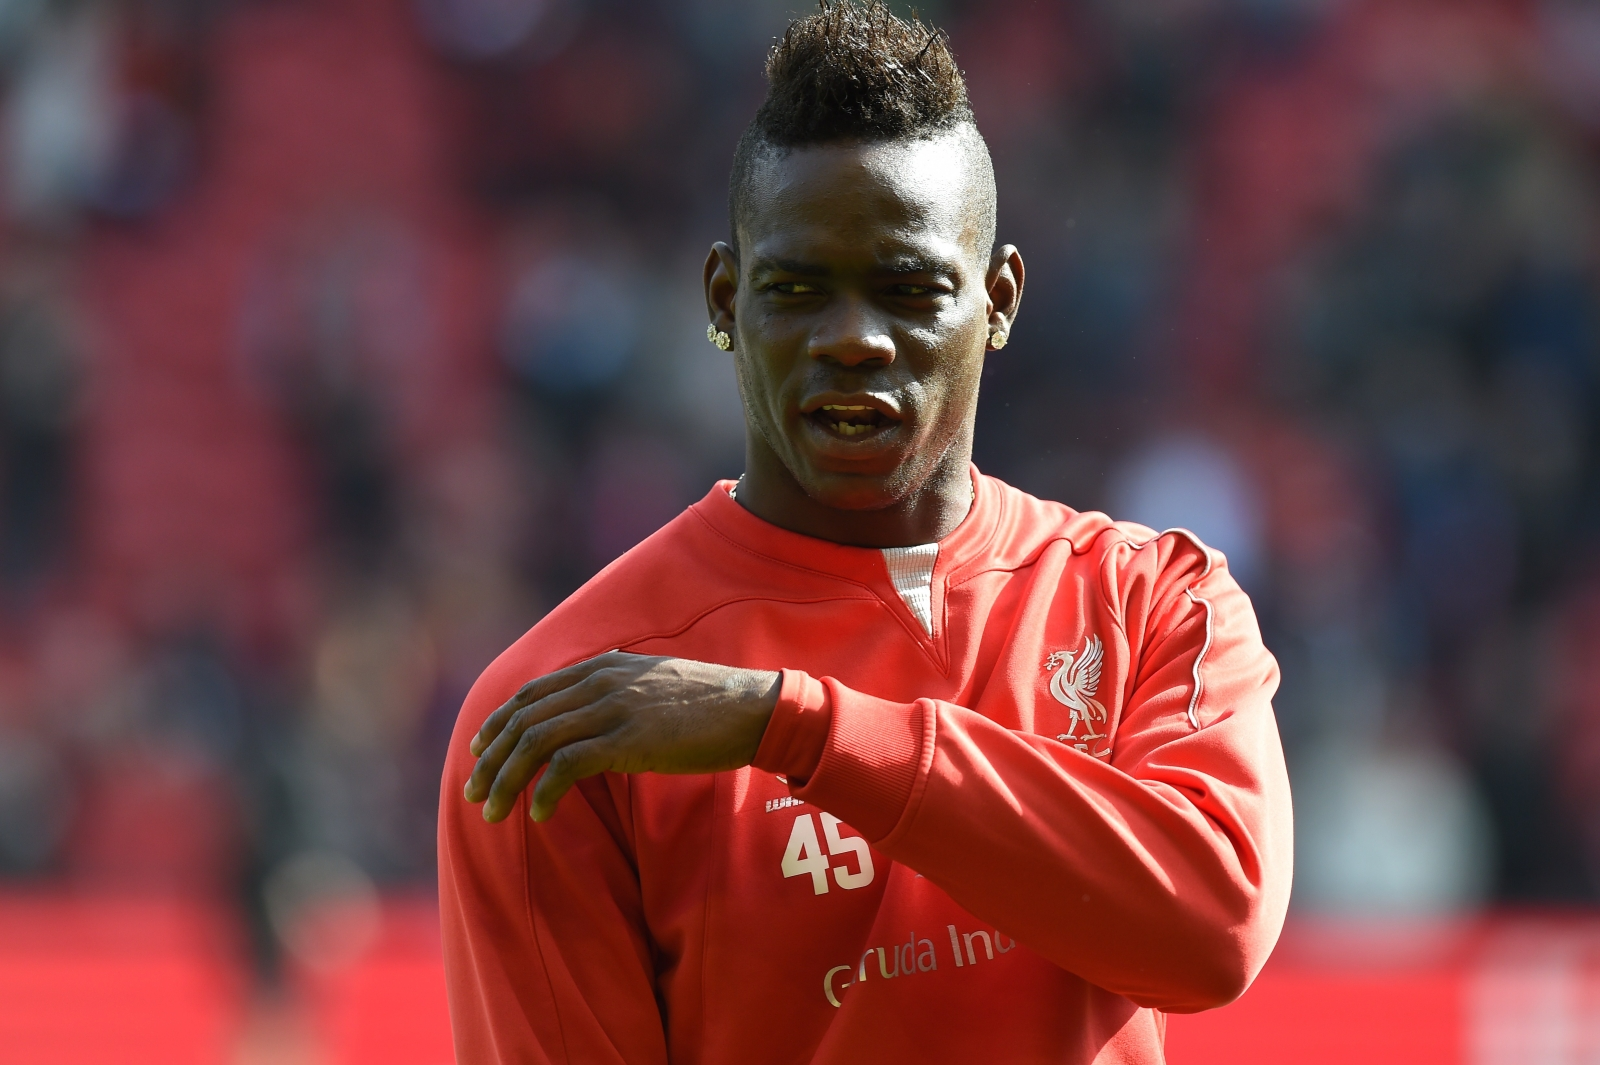 http://d.ibtimes.co.uk/en/full/1434215/mario-balotelli.jpg